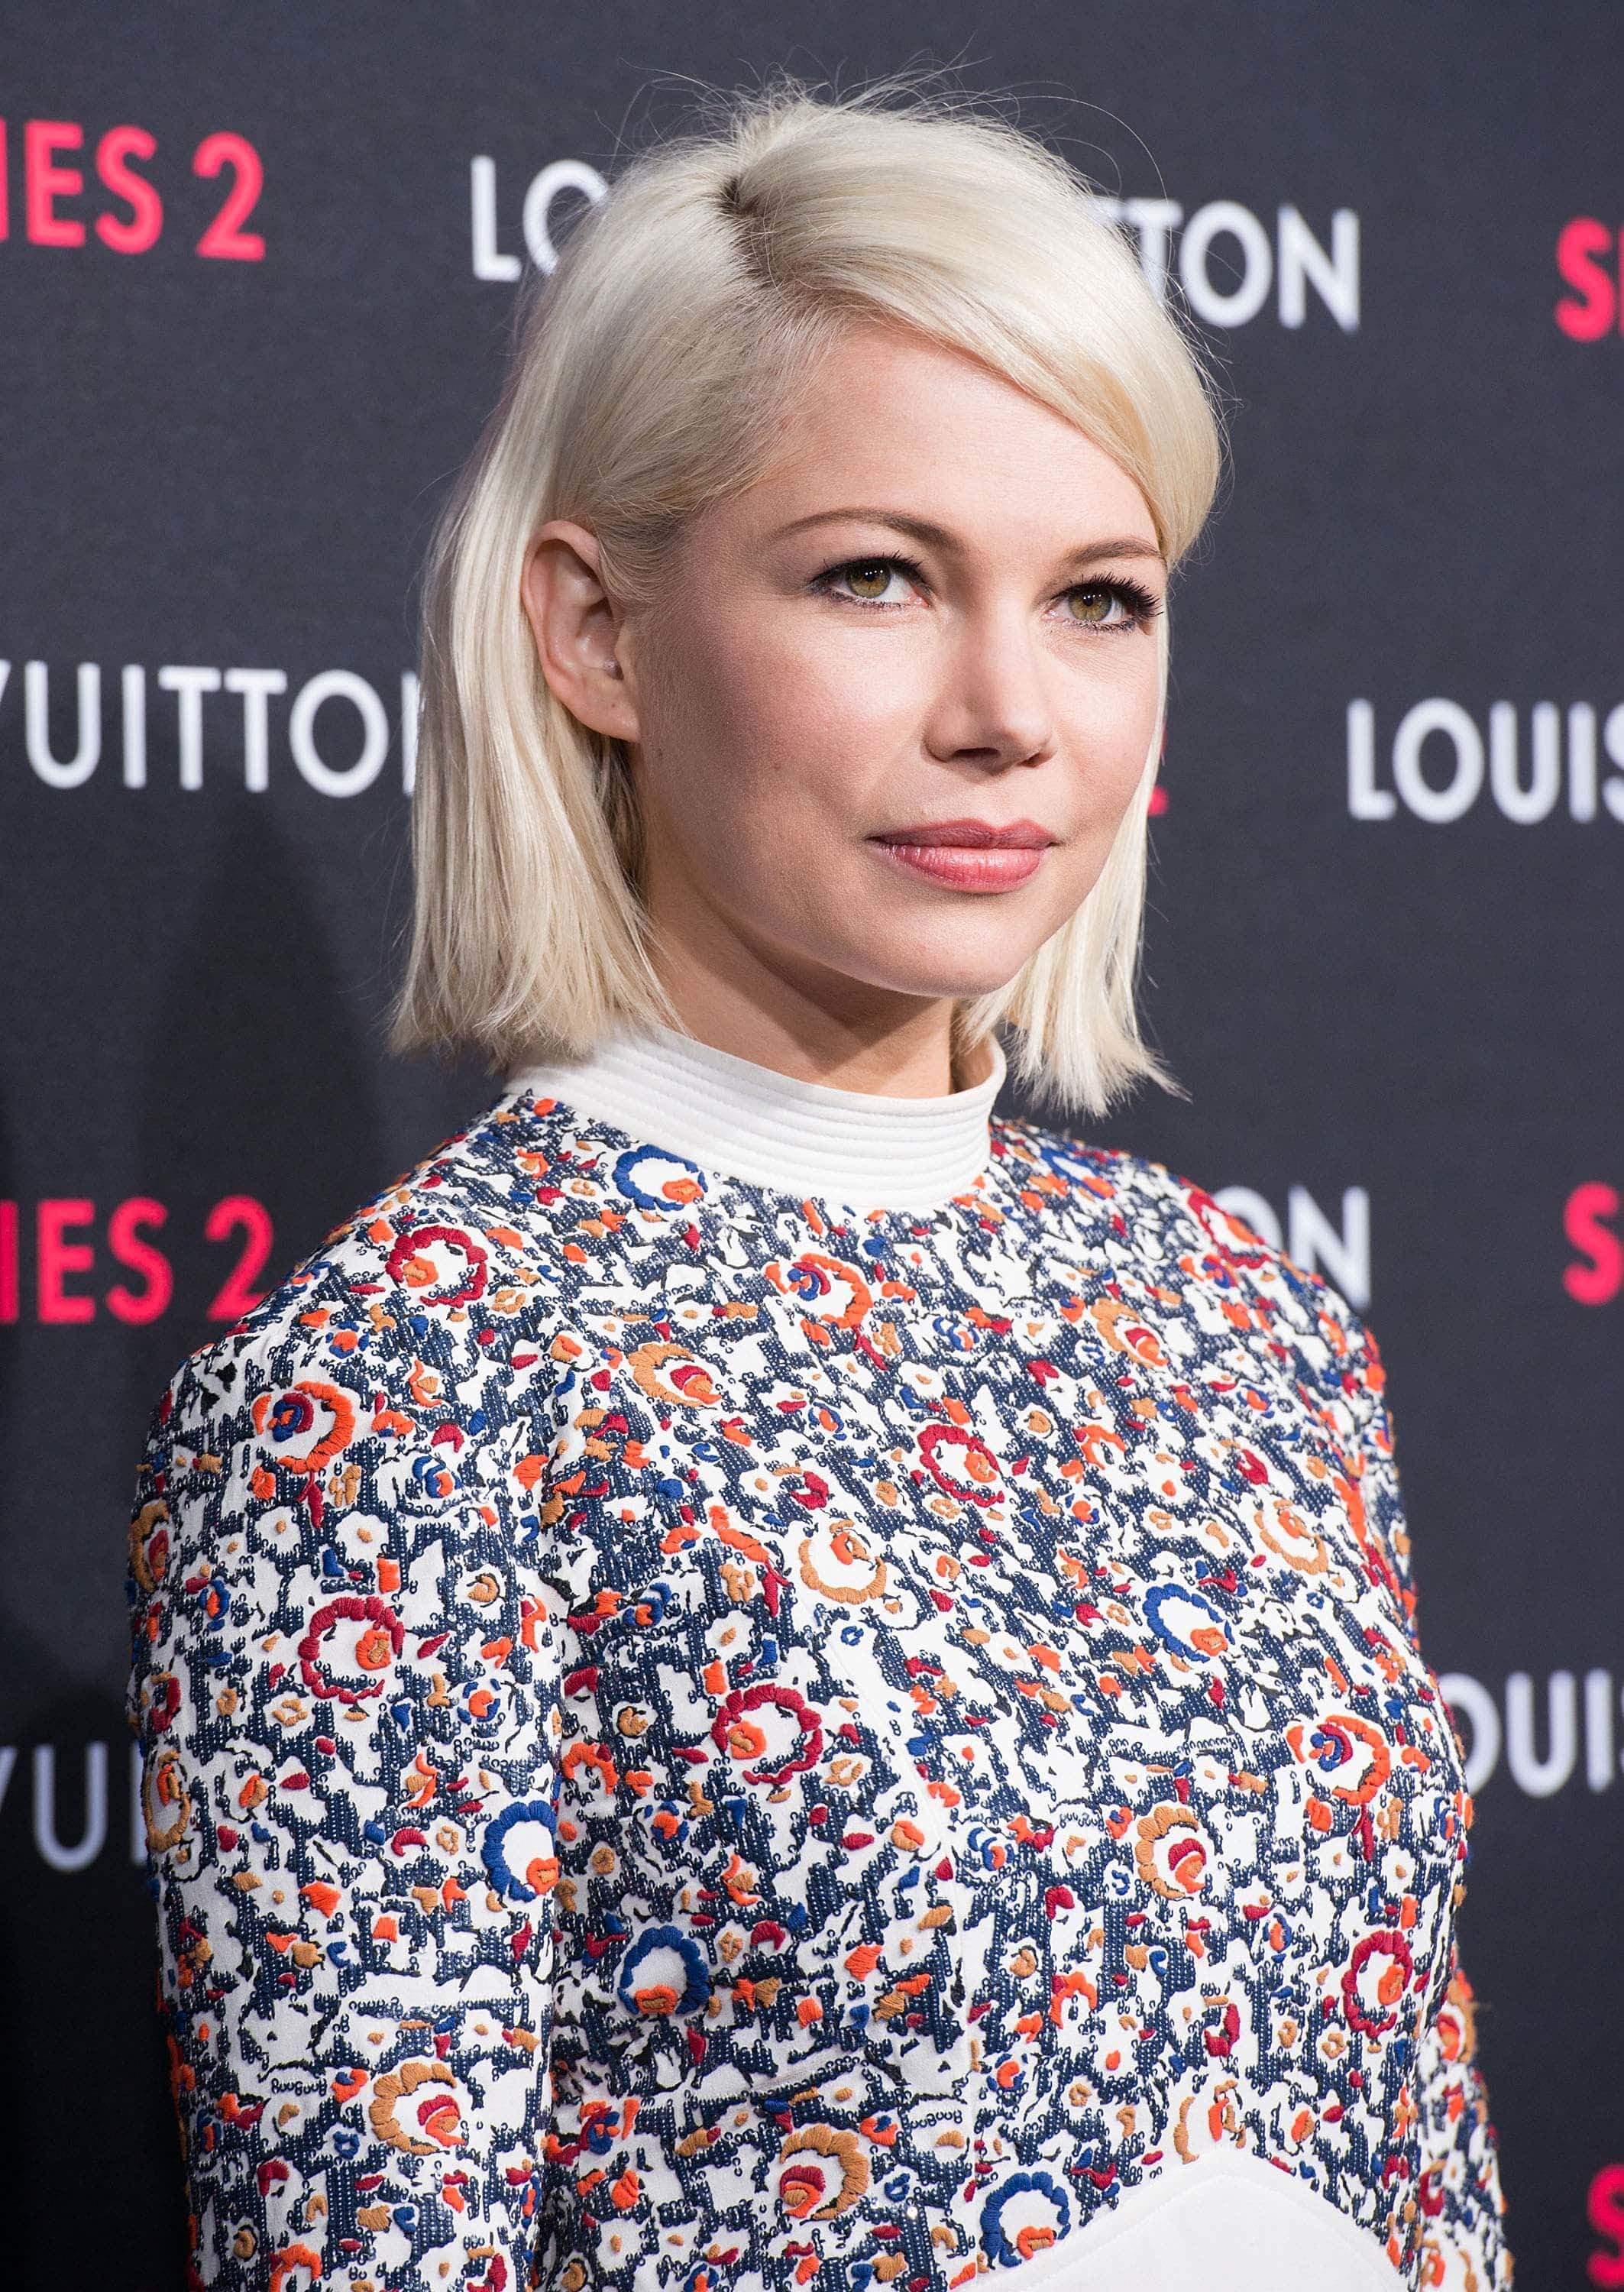 Blonde hair: Side view image of actress Michelle Williams with ice blonde short hair